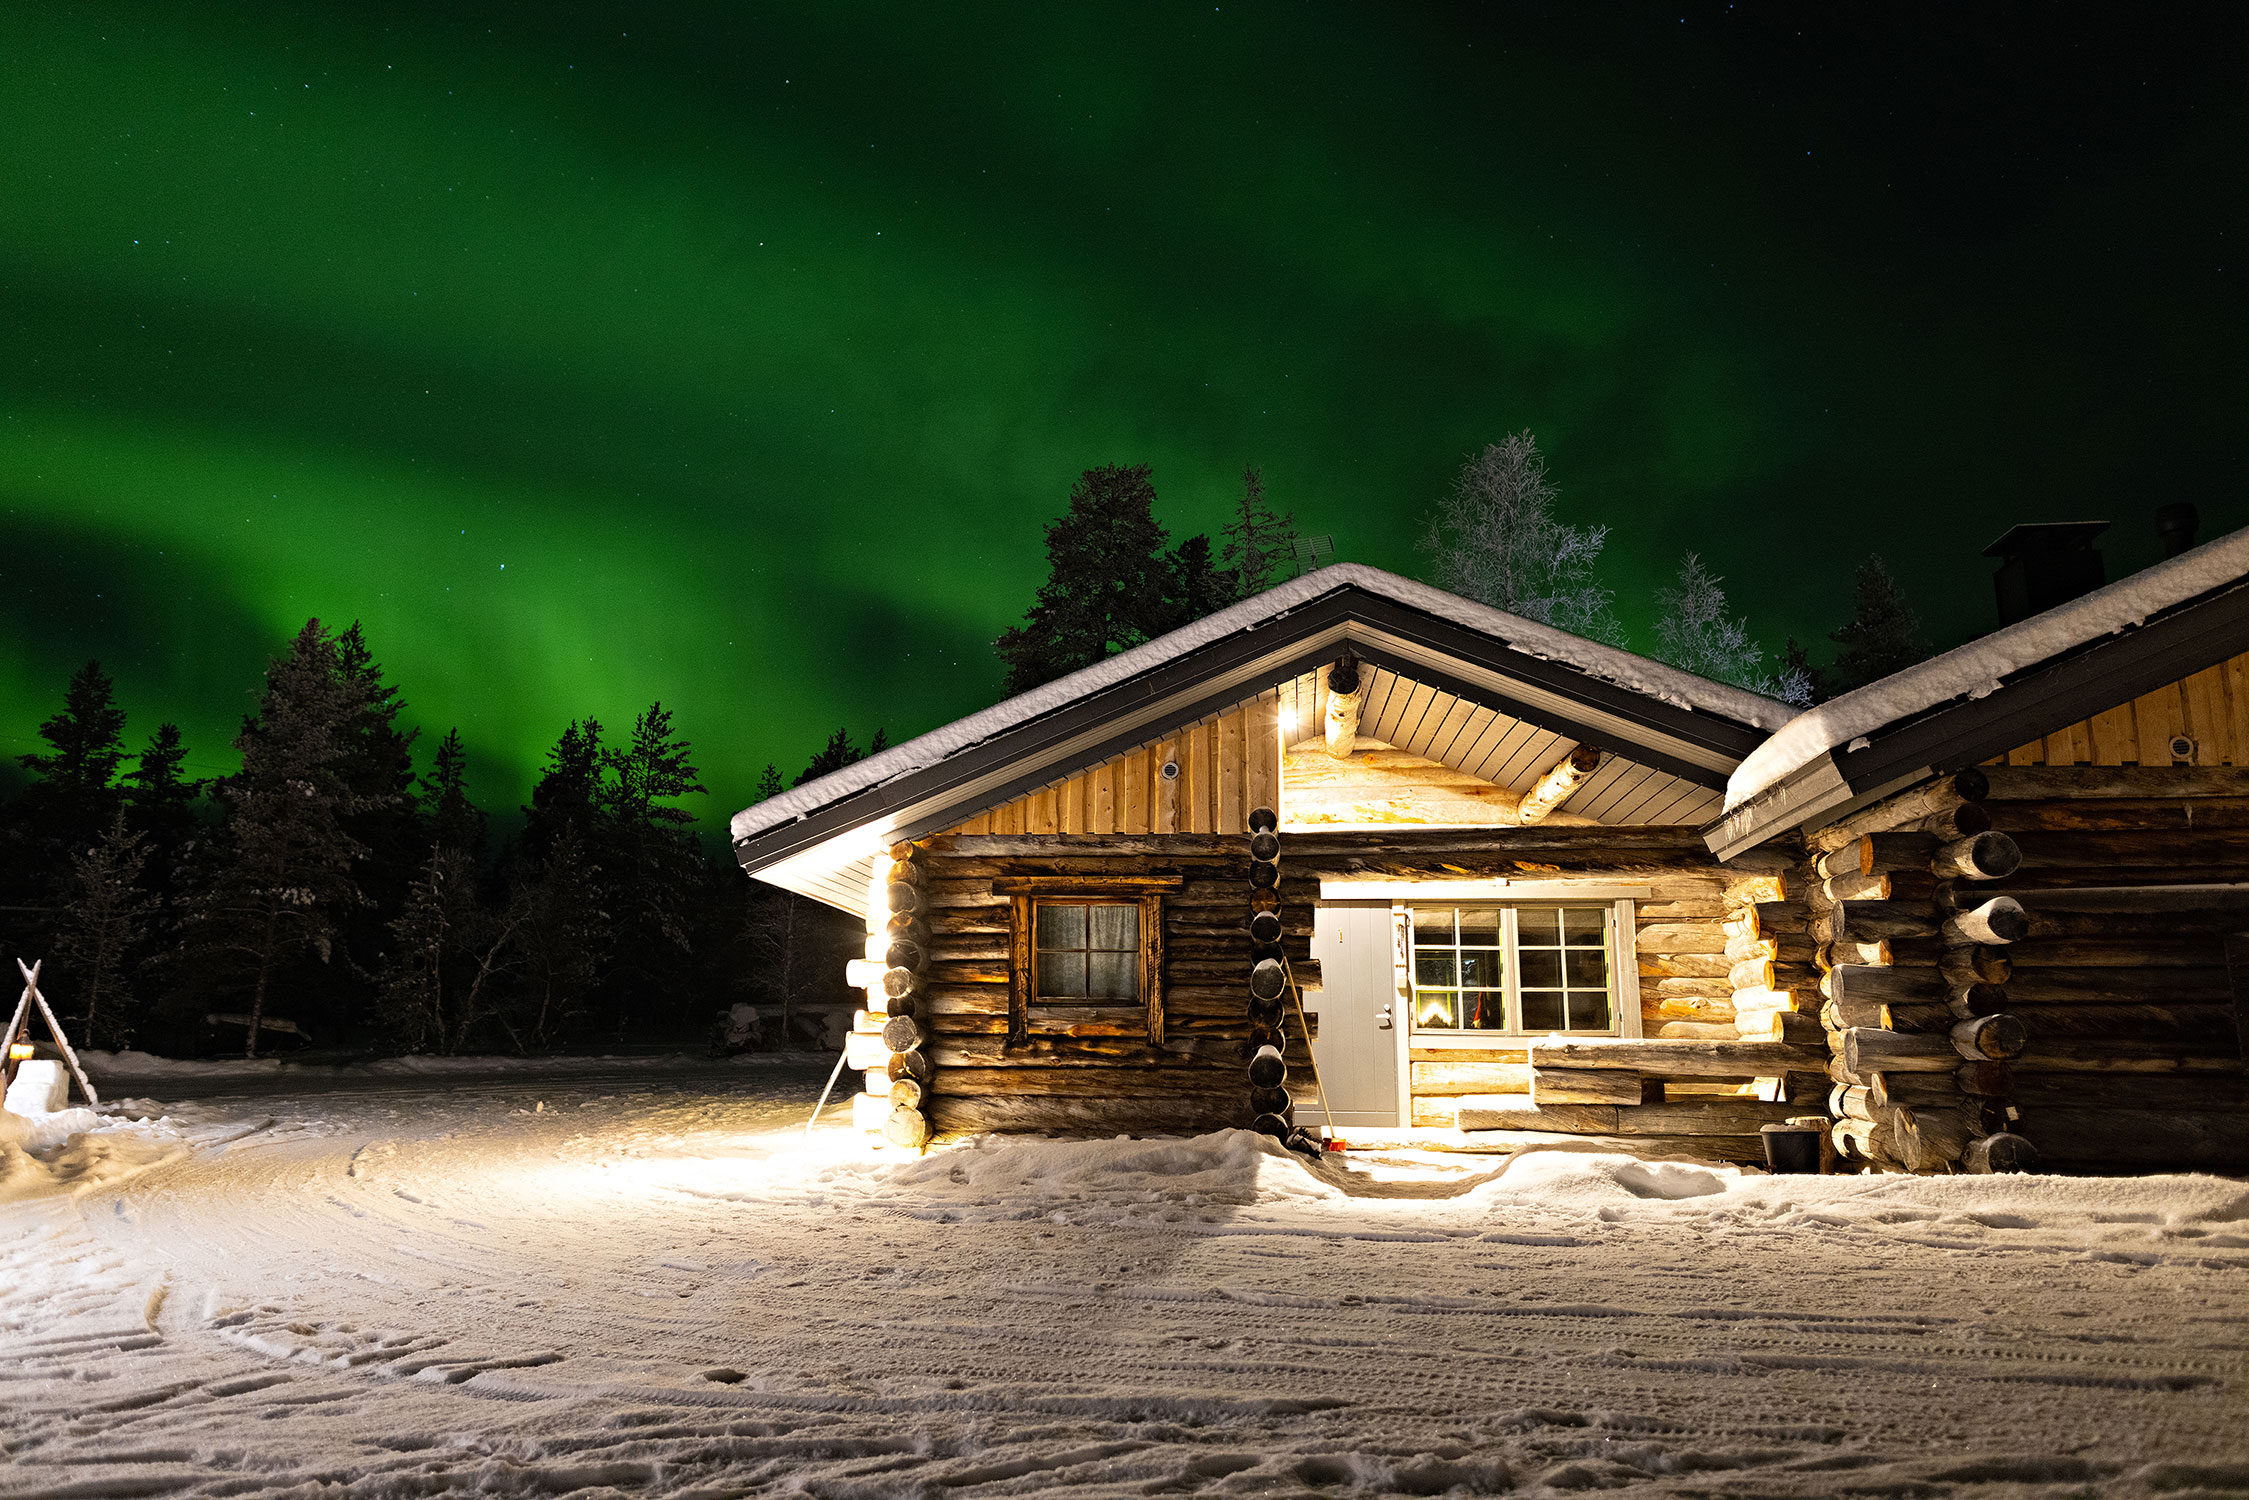 Northern lights consist of colourful, dancing and varying patterns in the night sky.